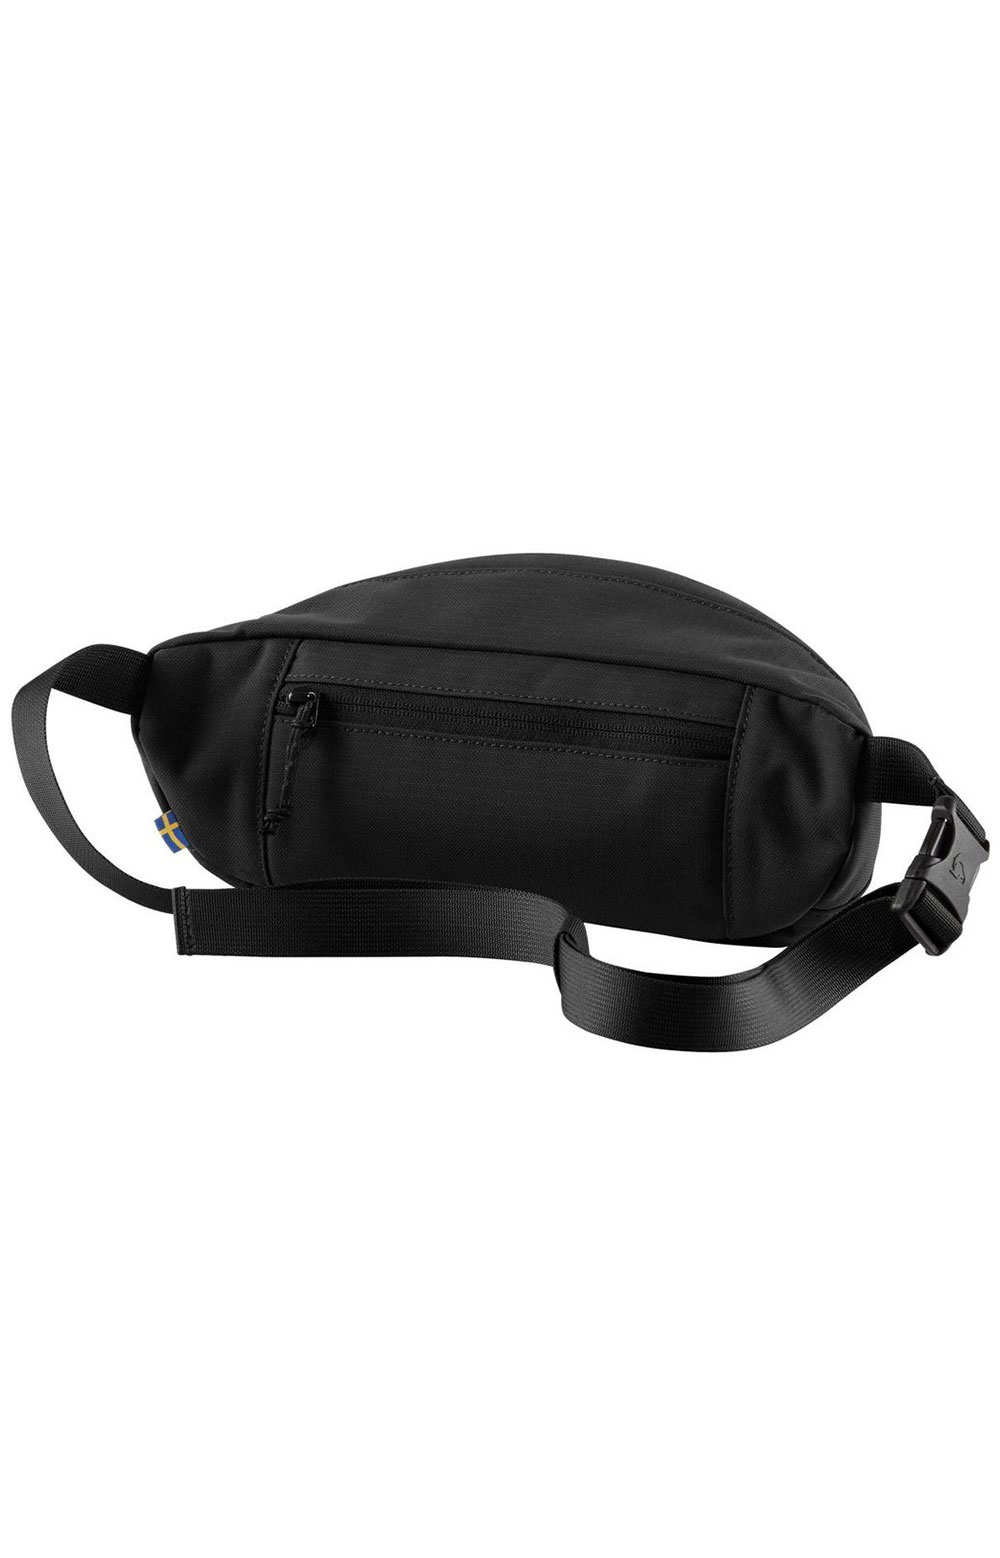 Ulvo Hip Pack Medium - Black 2